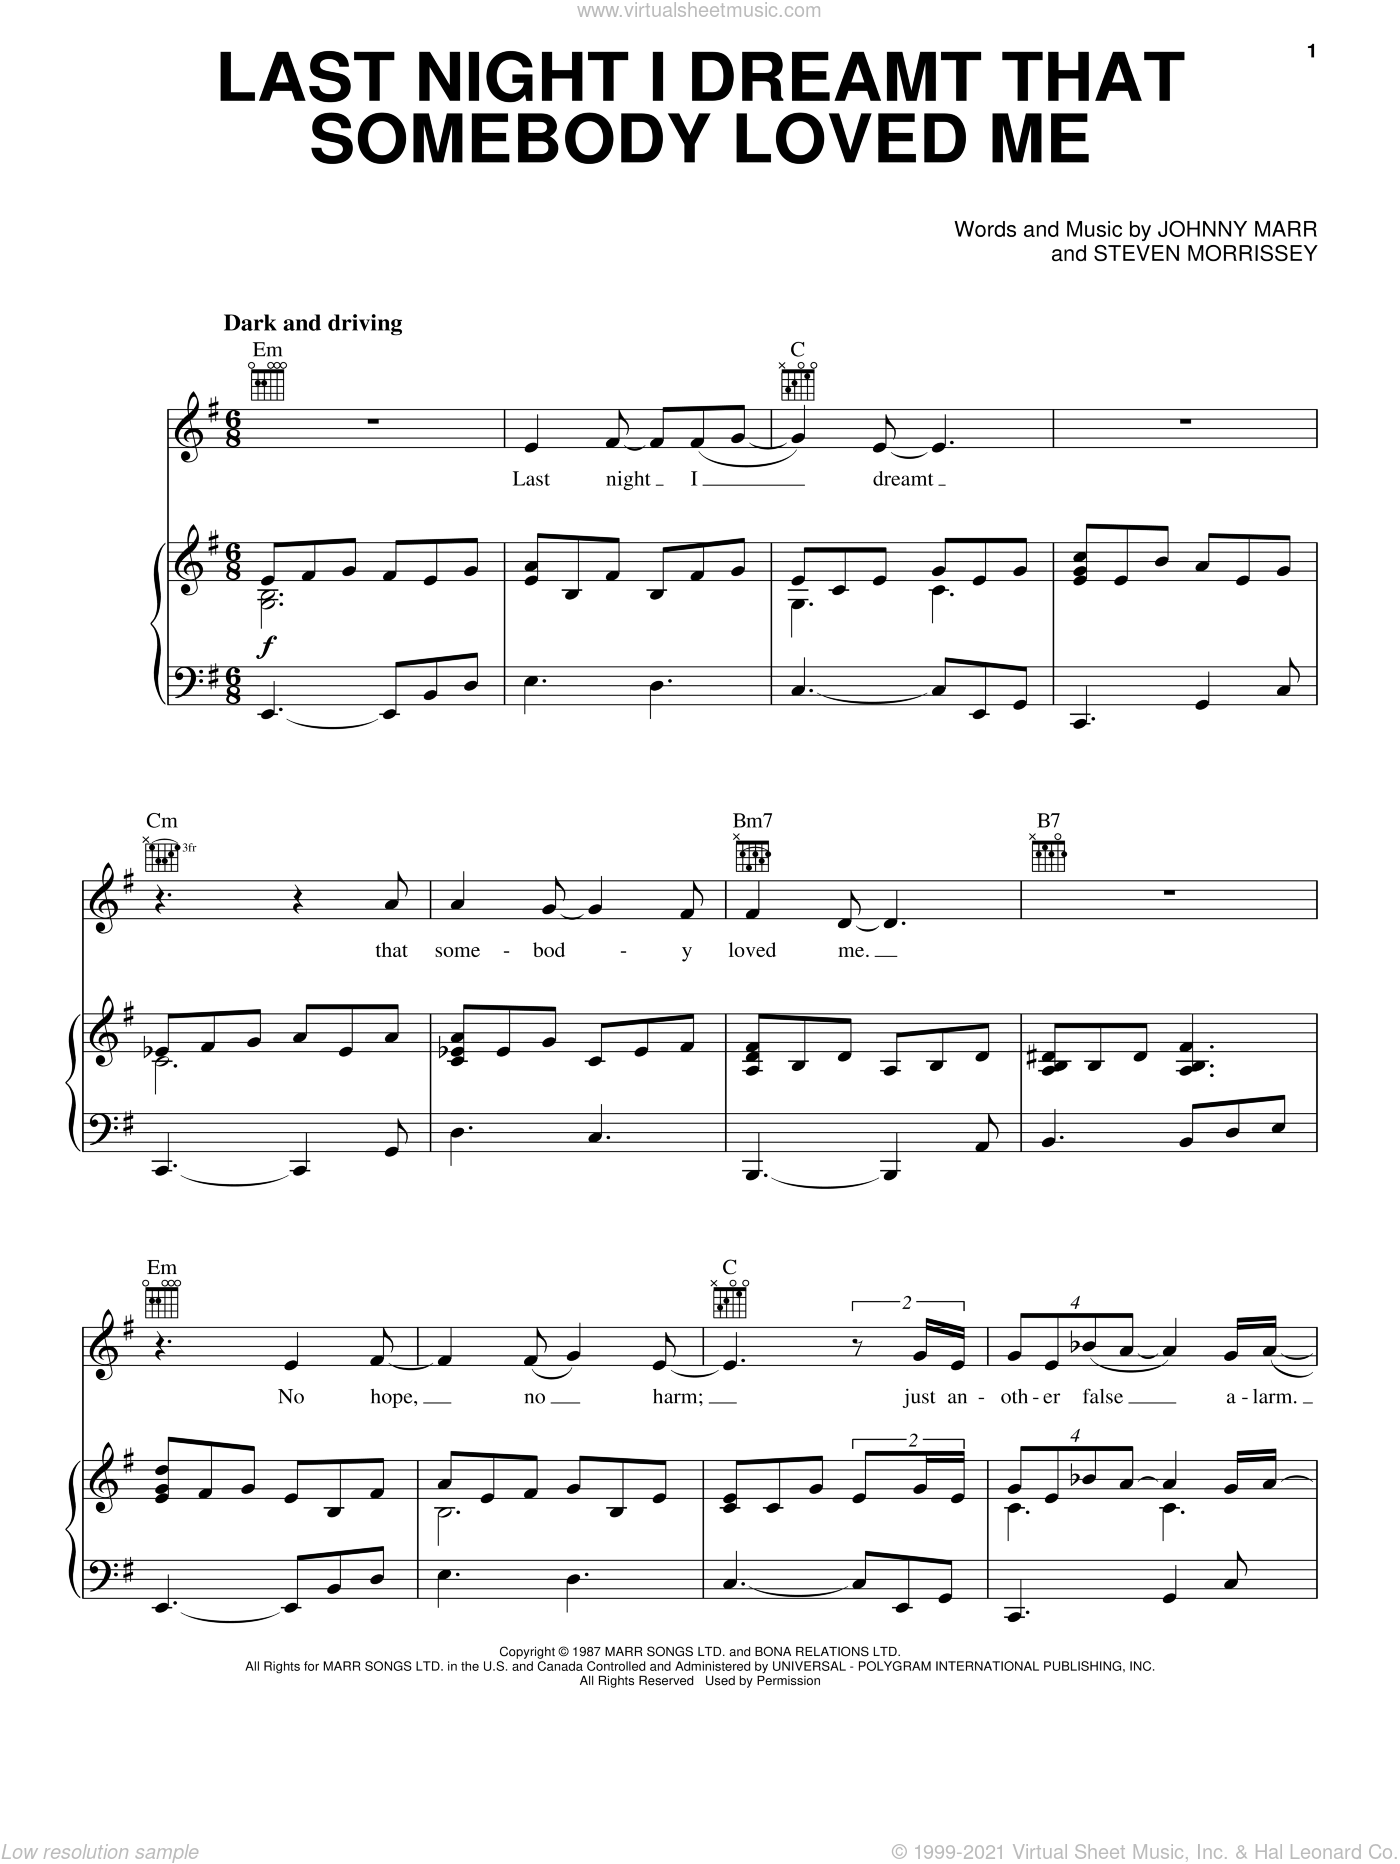 Last Night I Dreamt That Somebody Loved Me sheet music for voice, piano or guitar by Steven Morrissey, The Smiths and Johnny Marr. Score Image Preview.